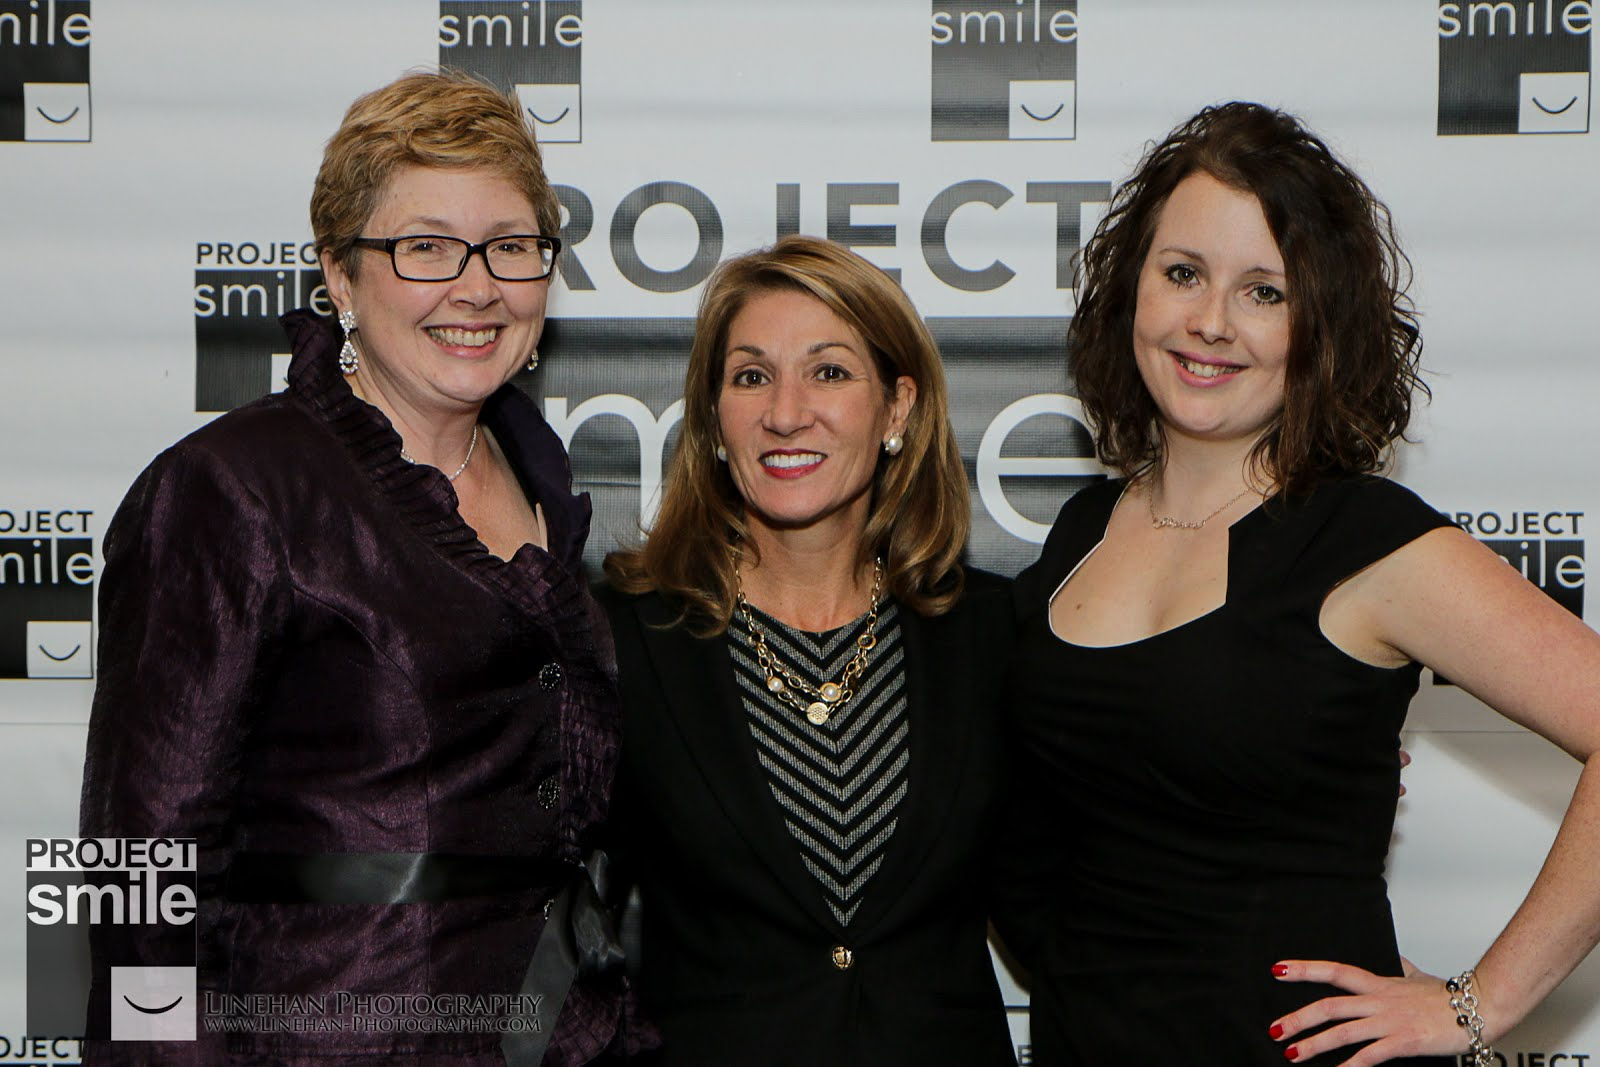 Project Smile 12th Anniversary Celebration